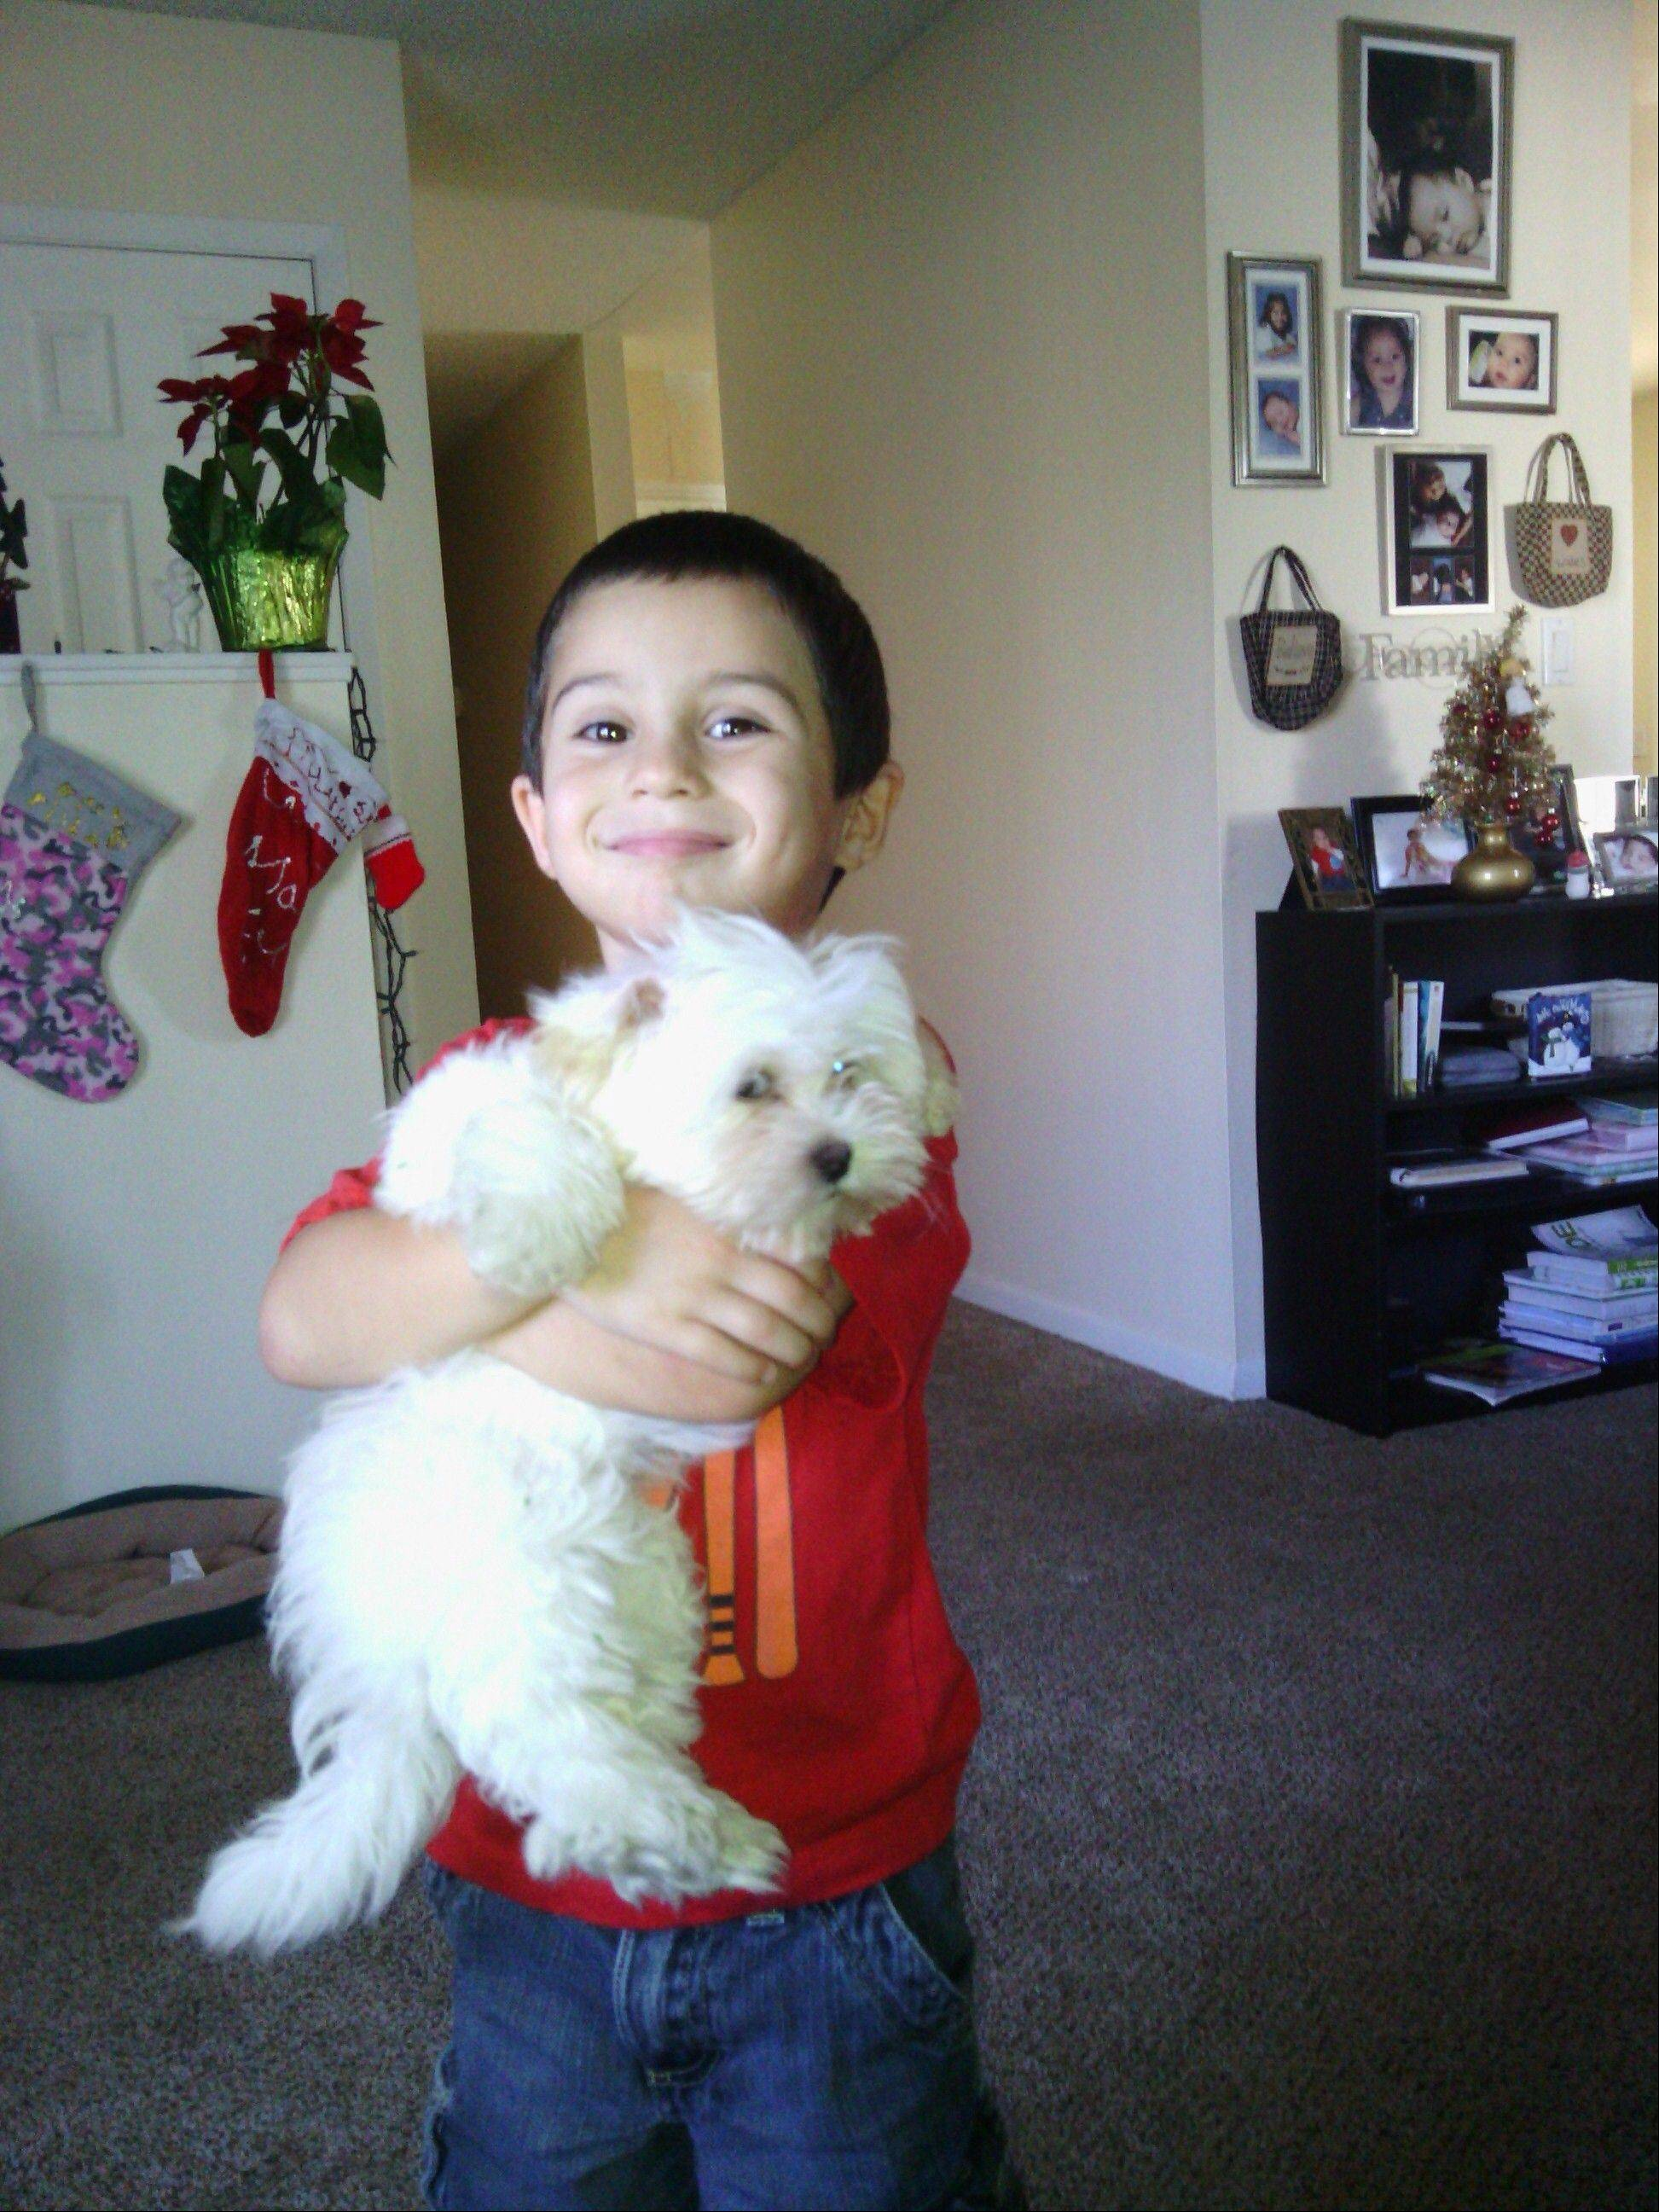 In this family photo released by Melody Russell and provided by the Tampa Police, 5-year-old Marcus Russell holds Honey, the family's 12-week-old Shih Tzu. Police say burglars broke into Melody Russell's home, stole her two children's gifts from under the tree and snatched the family's puppy.